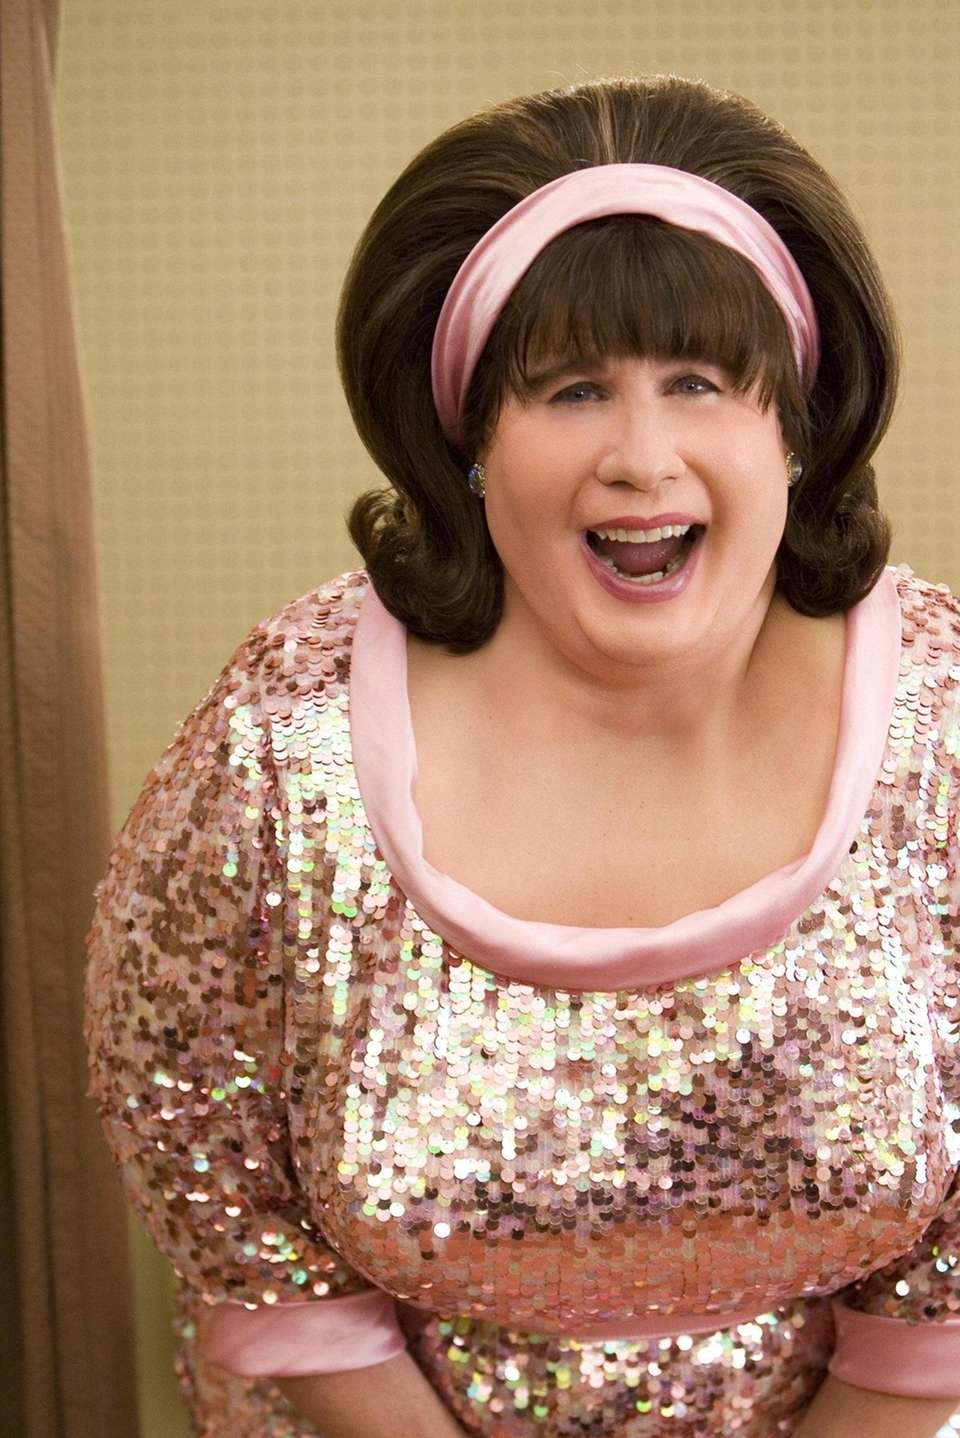 John Travolta stars as 'Edna Turnblad' in New